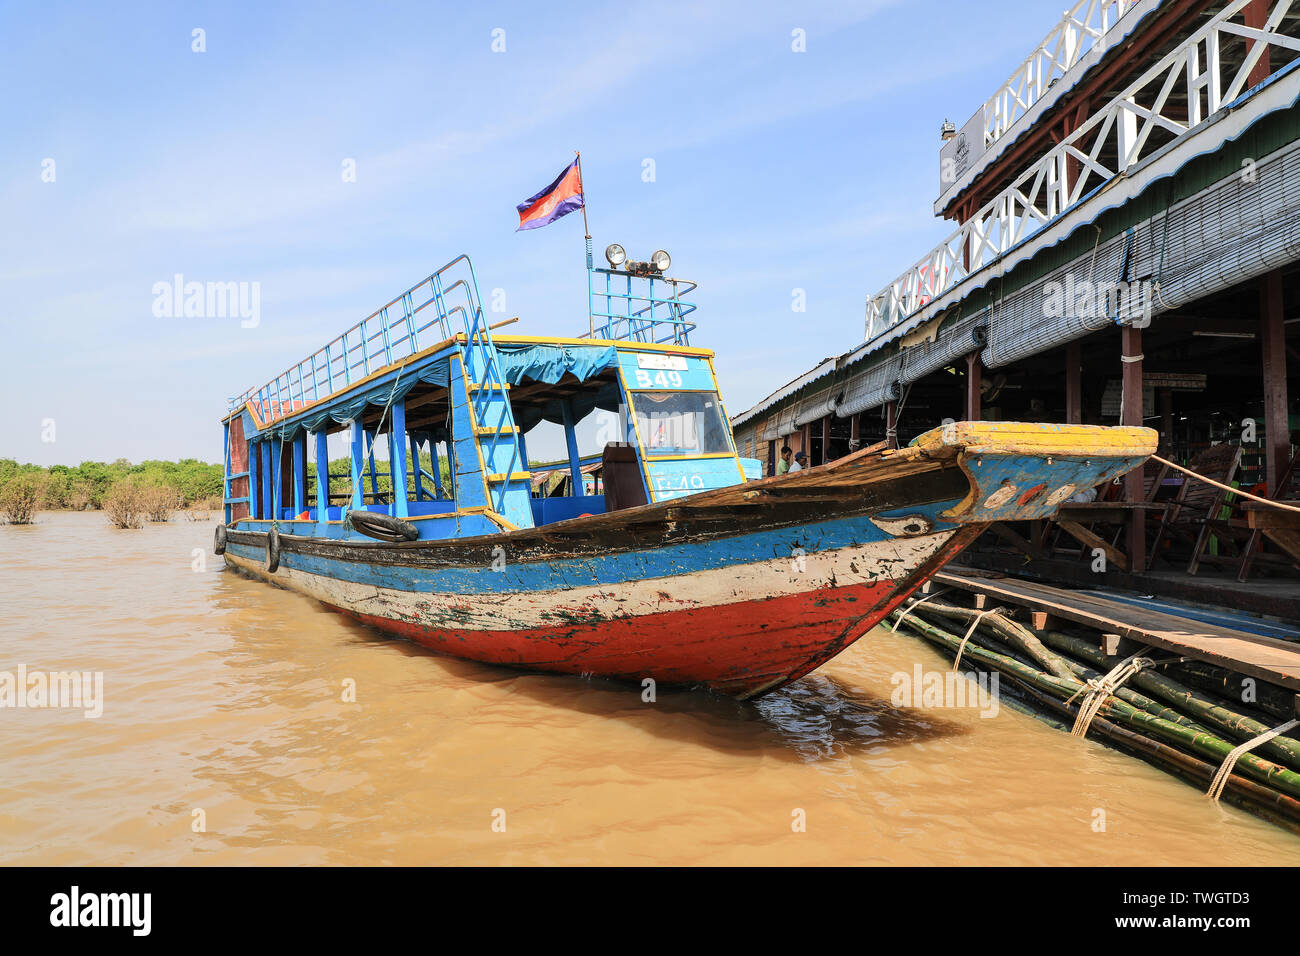 A tourist boat moored at the floating crocodile farm on Tonlé Sap Lake, near to Siem Reap, Cambodia, South East Asia - Stock Image